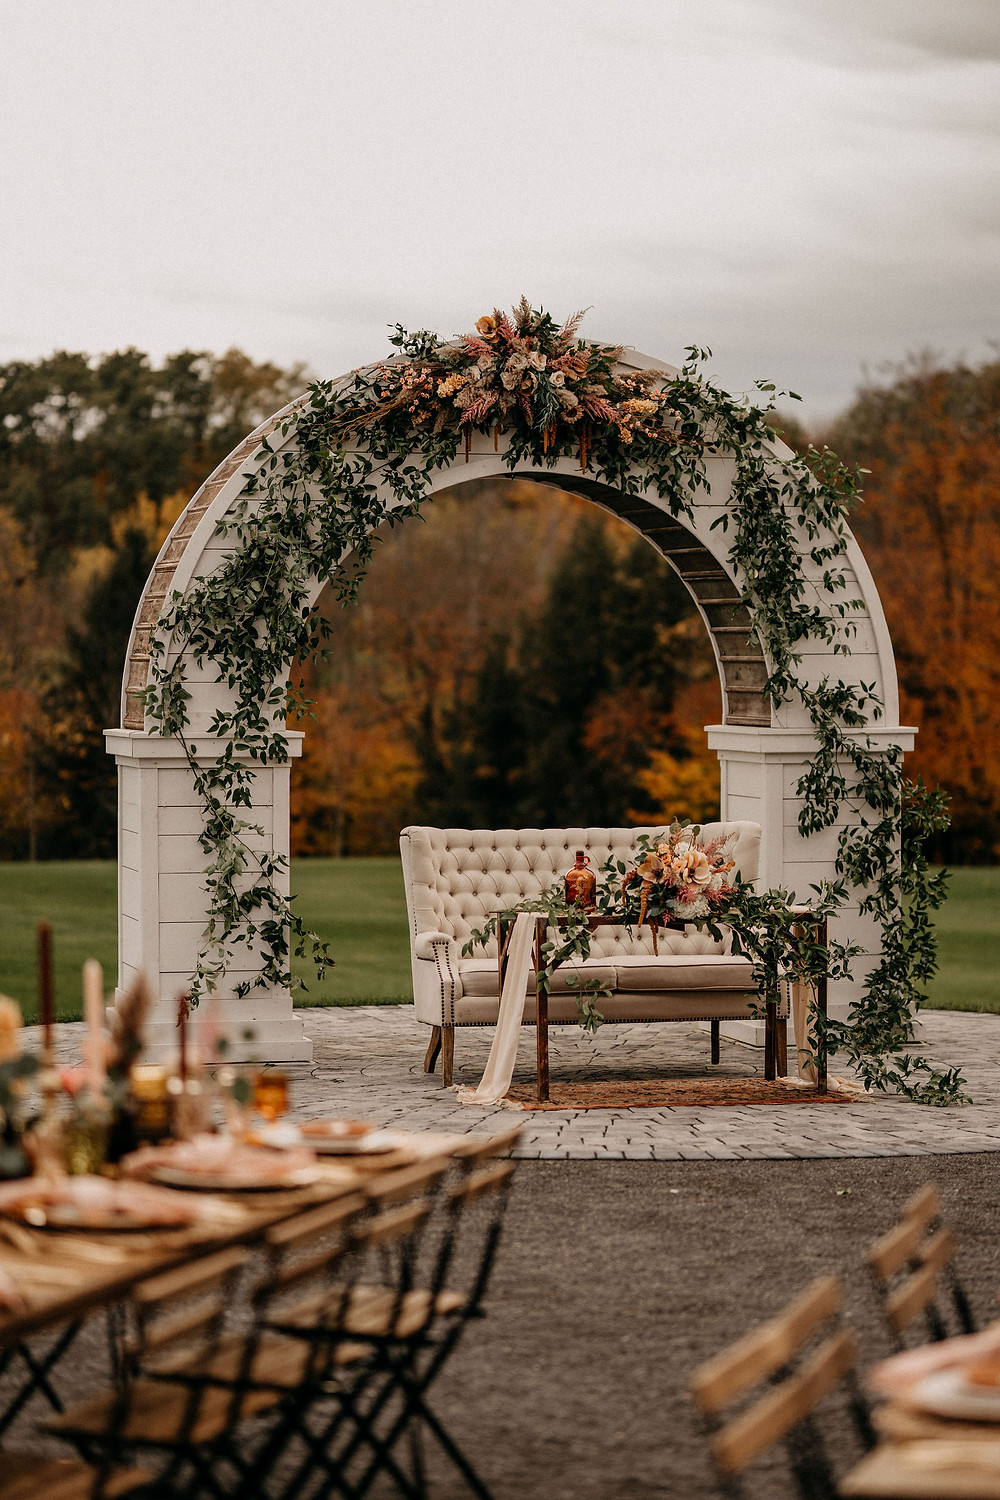 Wedding Sweetheart Table Inspiration: Warm & Rustic Styled Shoot at Hayloft in the Arch captured by Tracy Jade Photography featured on Pretty Little Vintage Co.